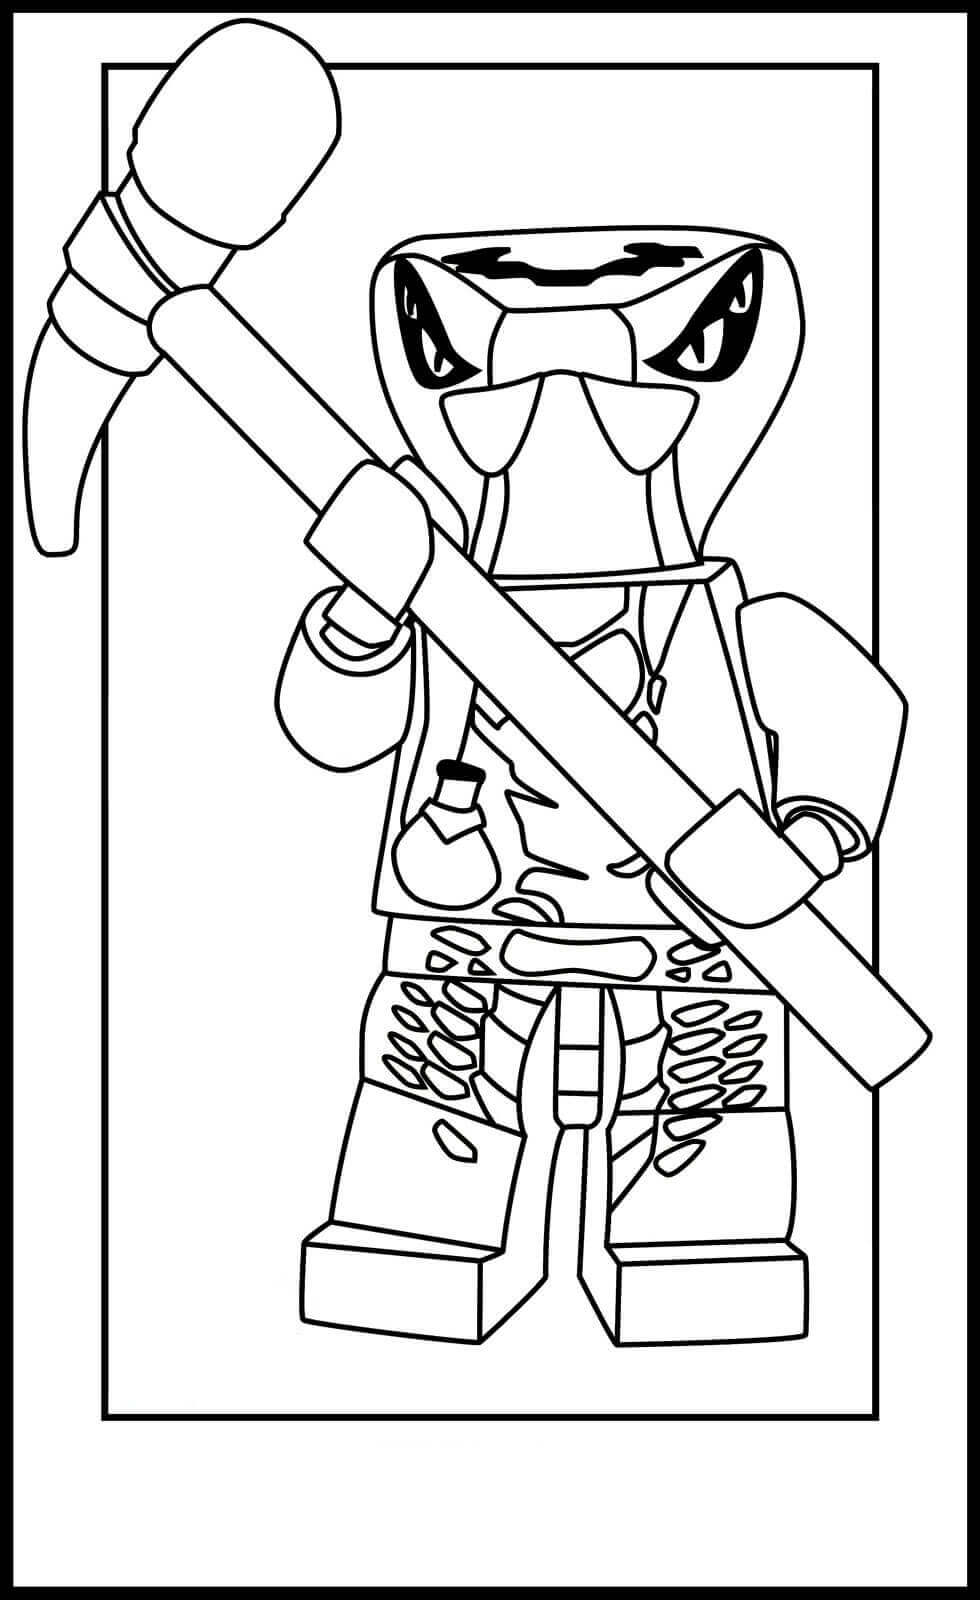 Ninjago Serpentine Spitta Coloring Pages